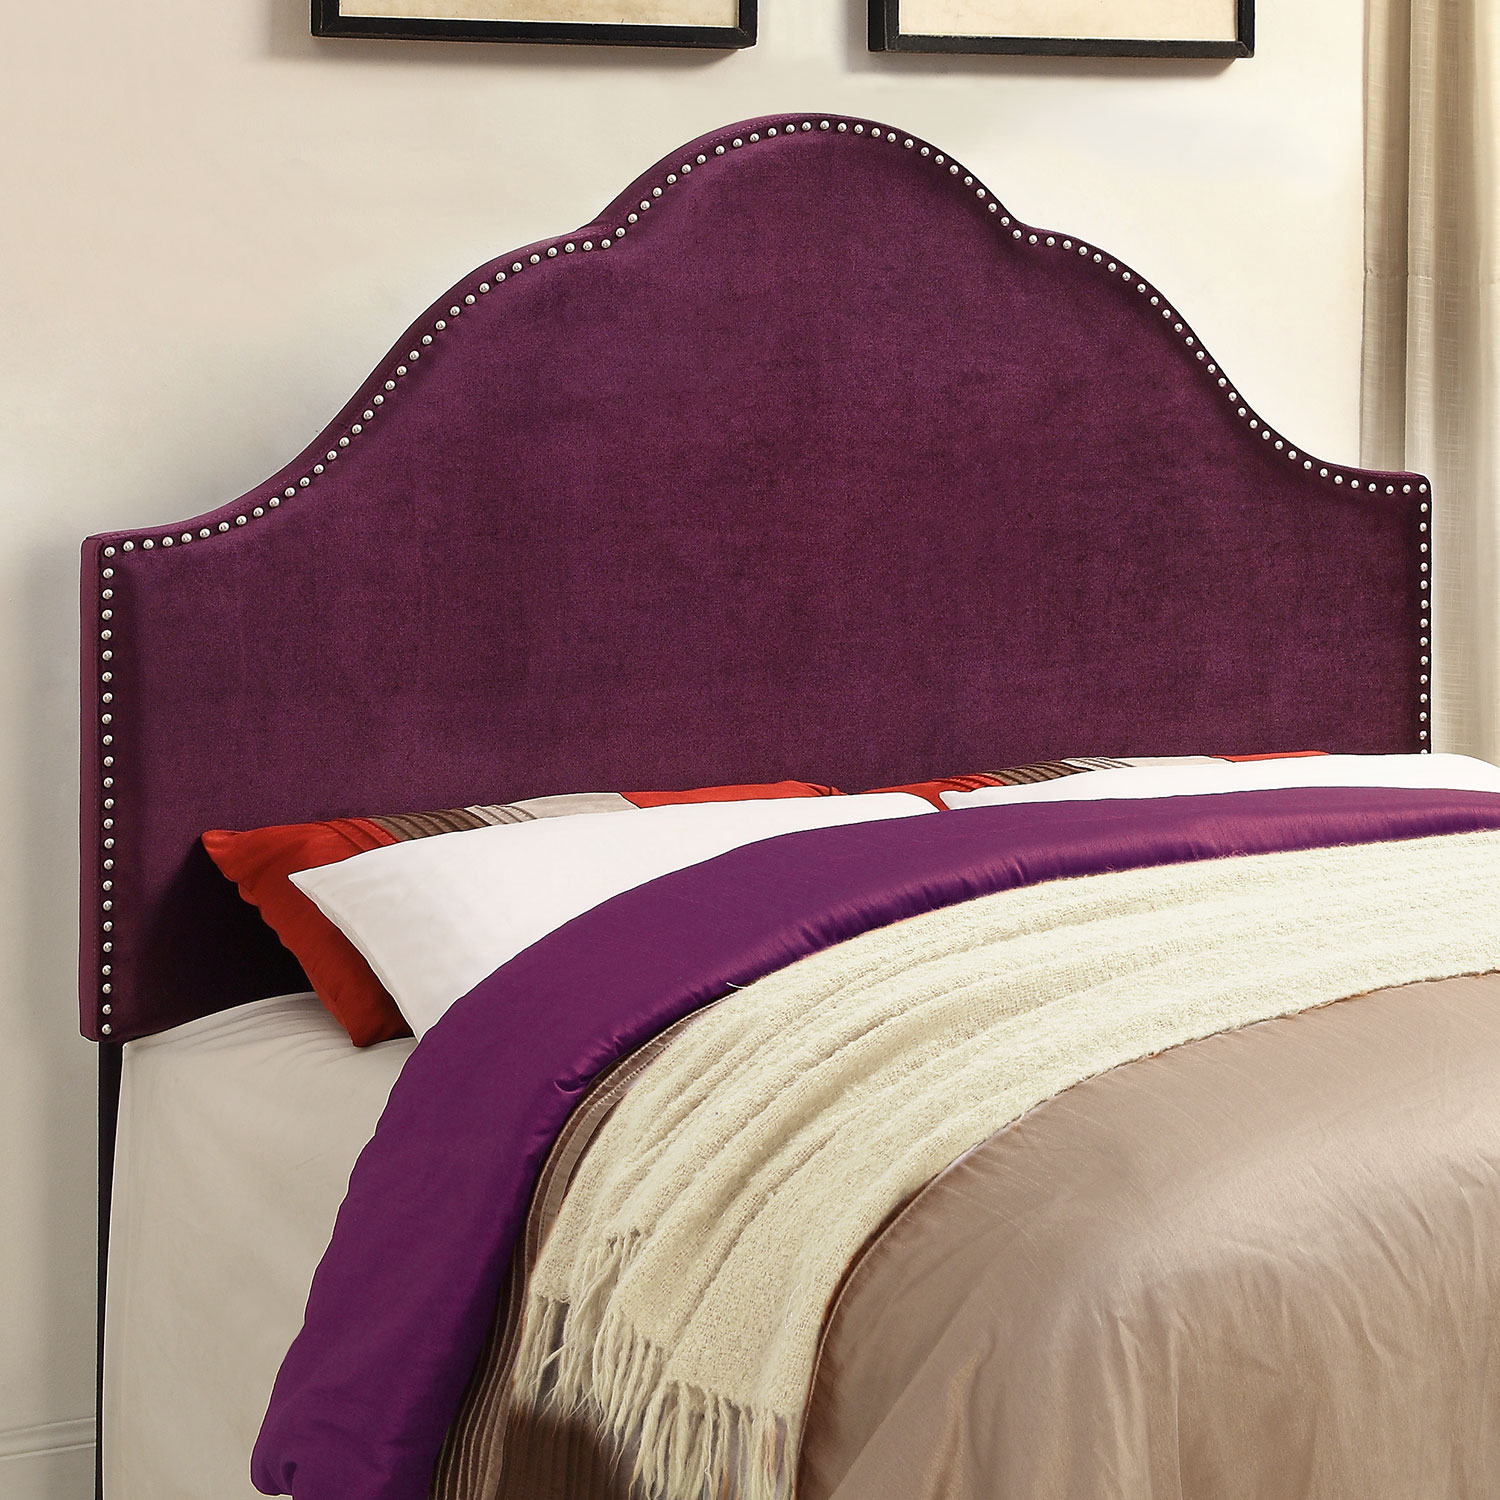 Delaney Queen Headboard - Plum